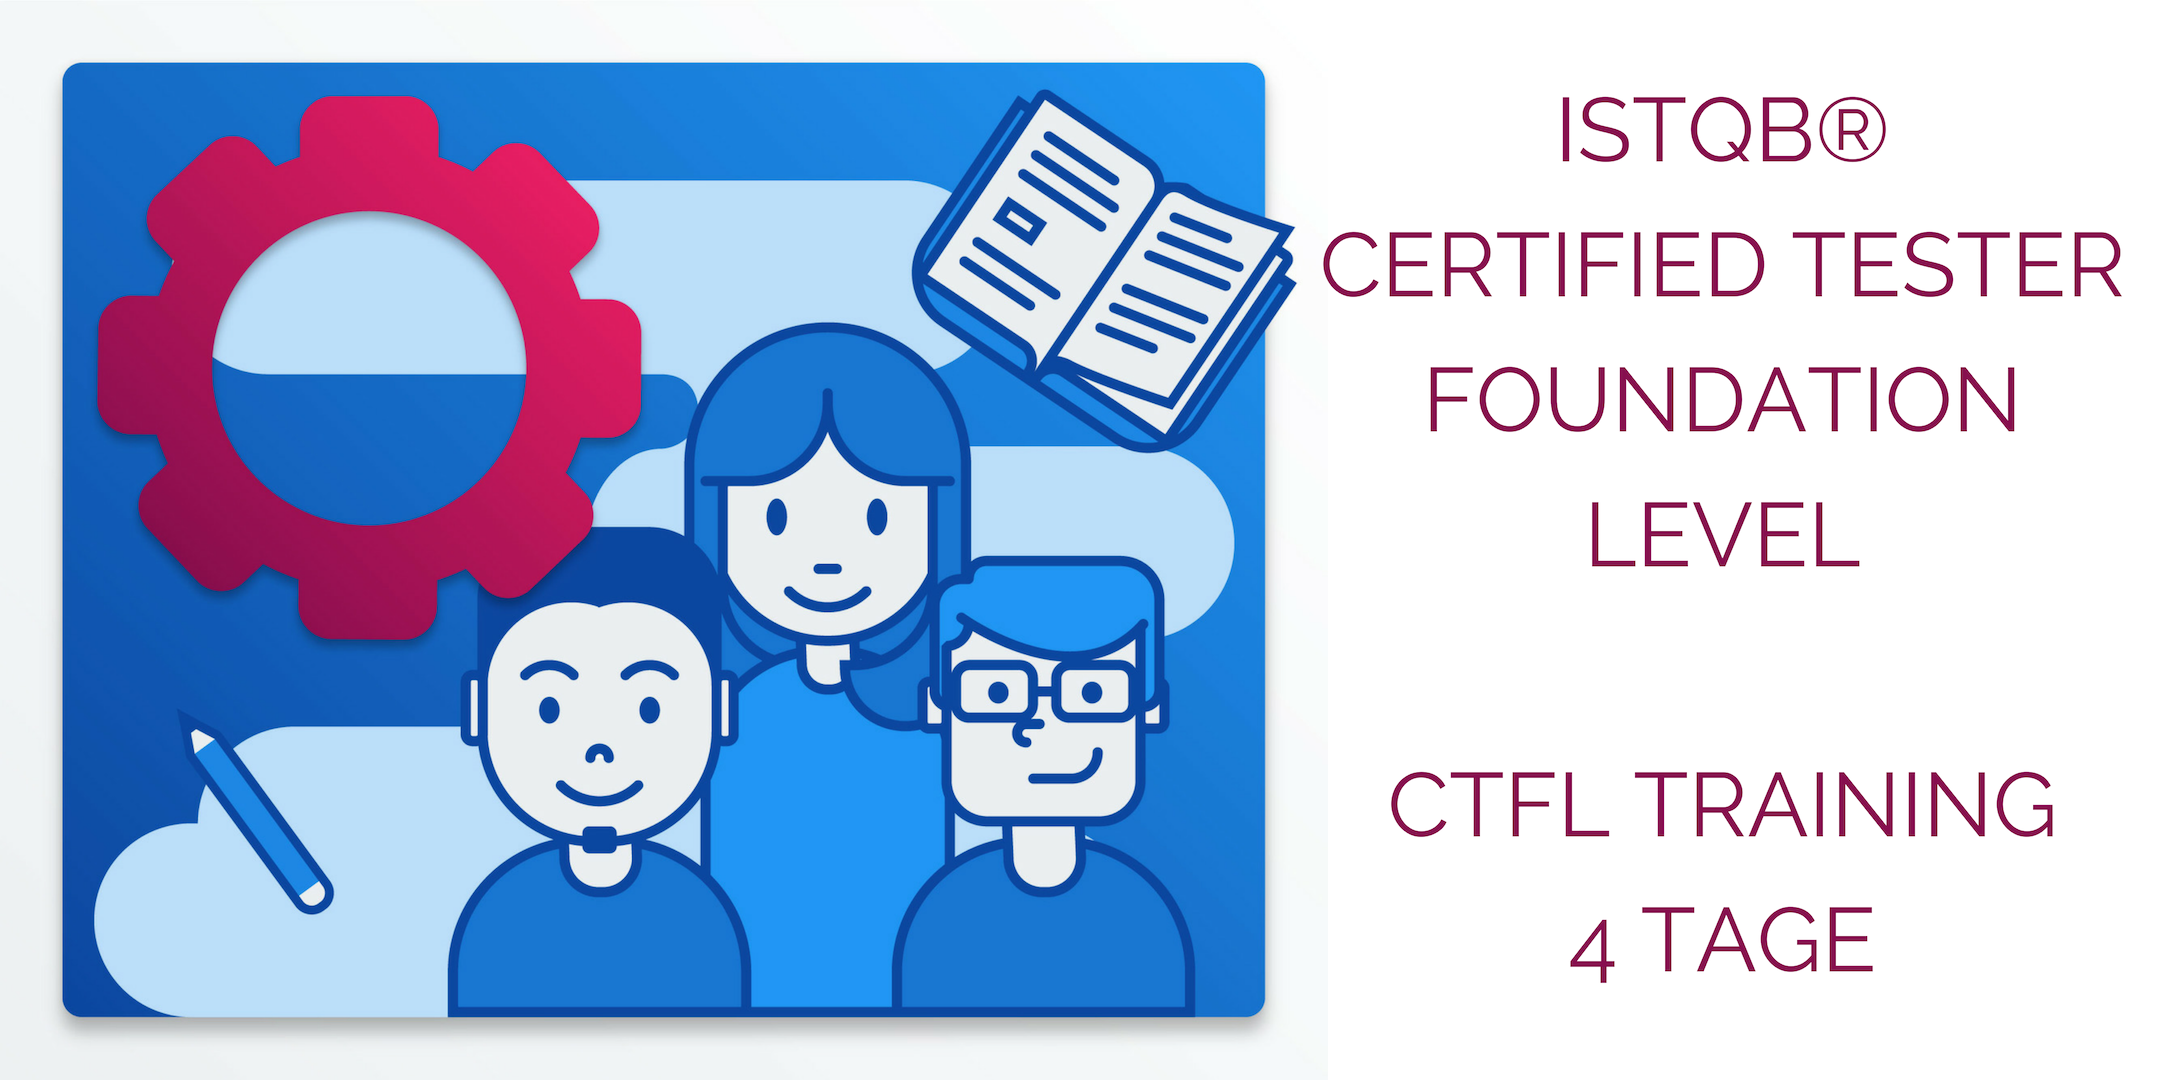 LIVE-Online ISTQB® Certified Tester Foundation Level - CTFL Training 4 Tage